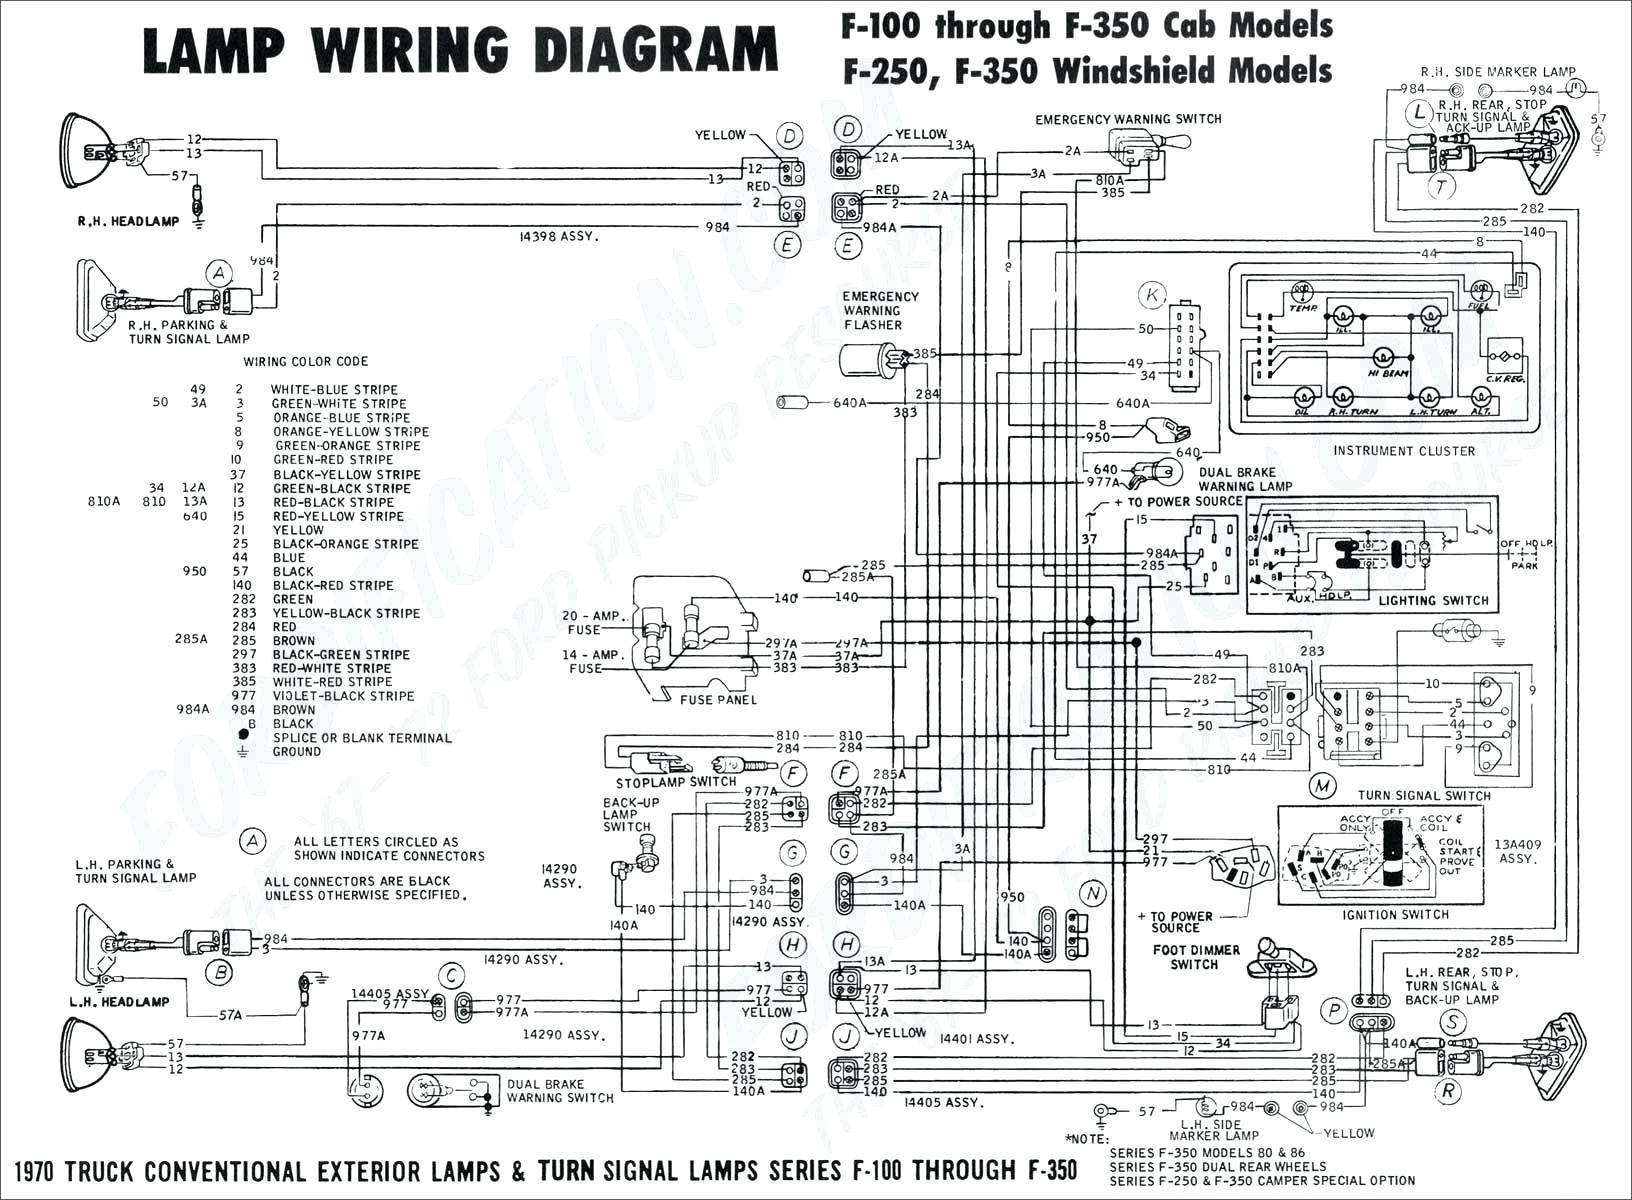 Tail and Brake Light Grote Led Wiring Diagram E8aac9 Trailer Tail Lights Wiring Diagram Of Tail and Brake Light Grote Led Wiring Diagram